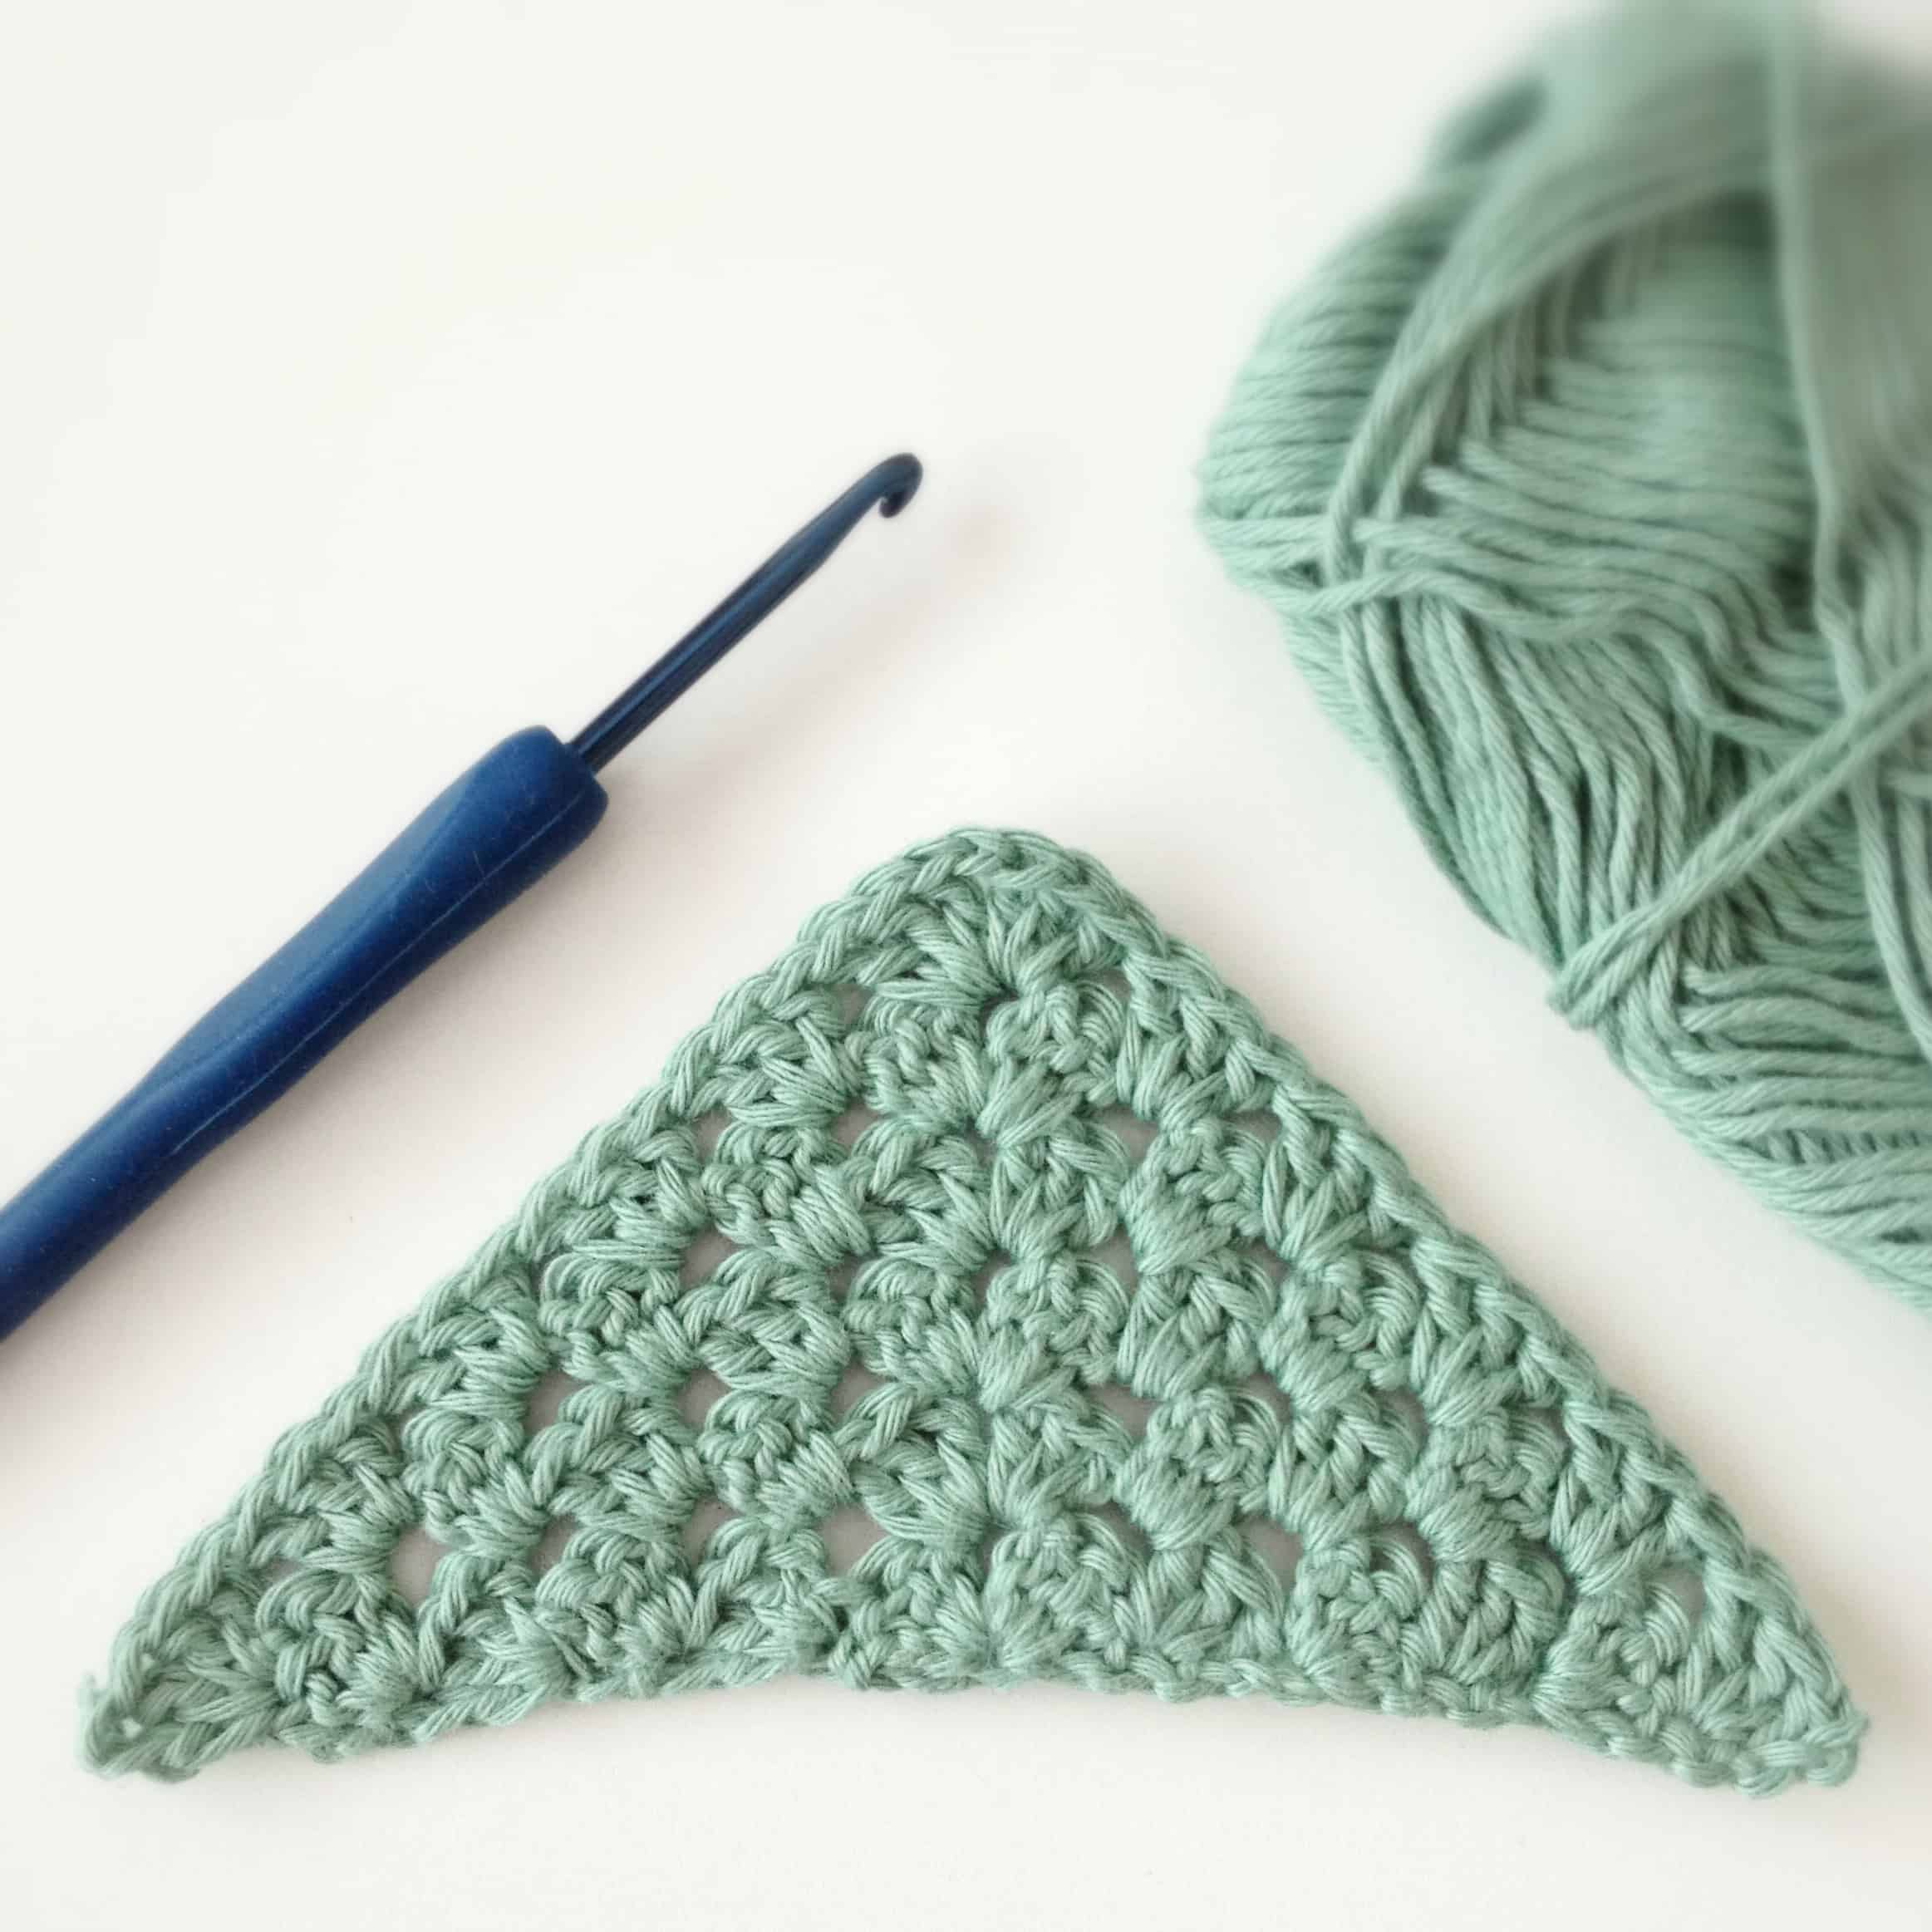 Crochet Triangle : Free Crochet Pattern Modification : Triangle